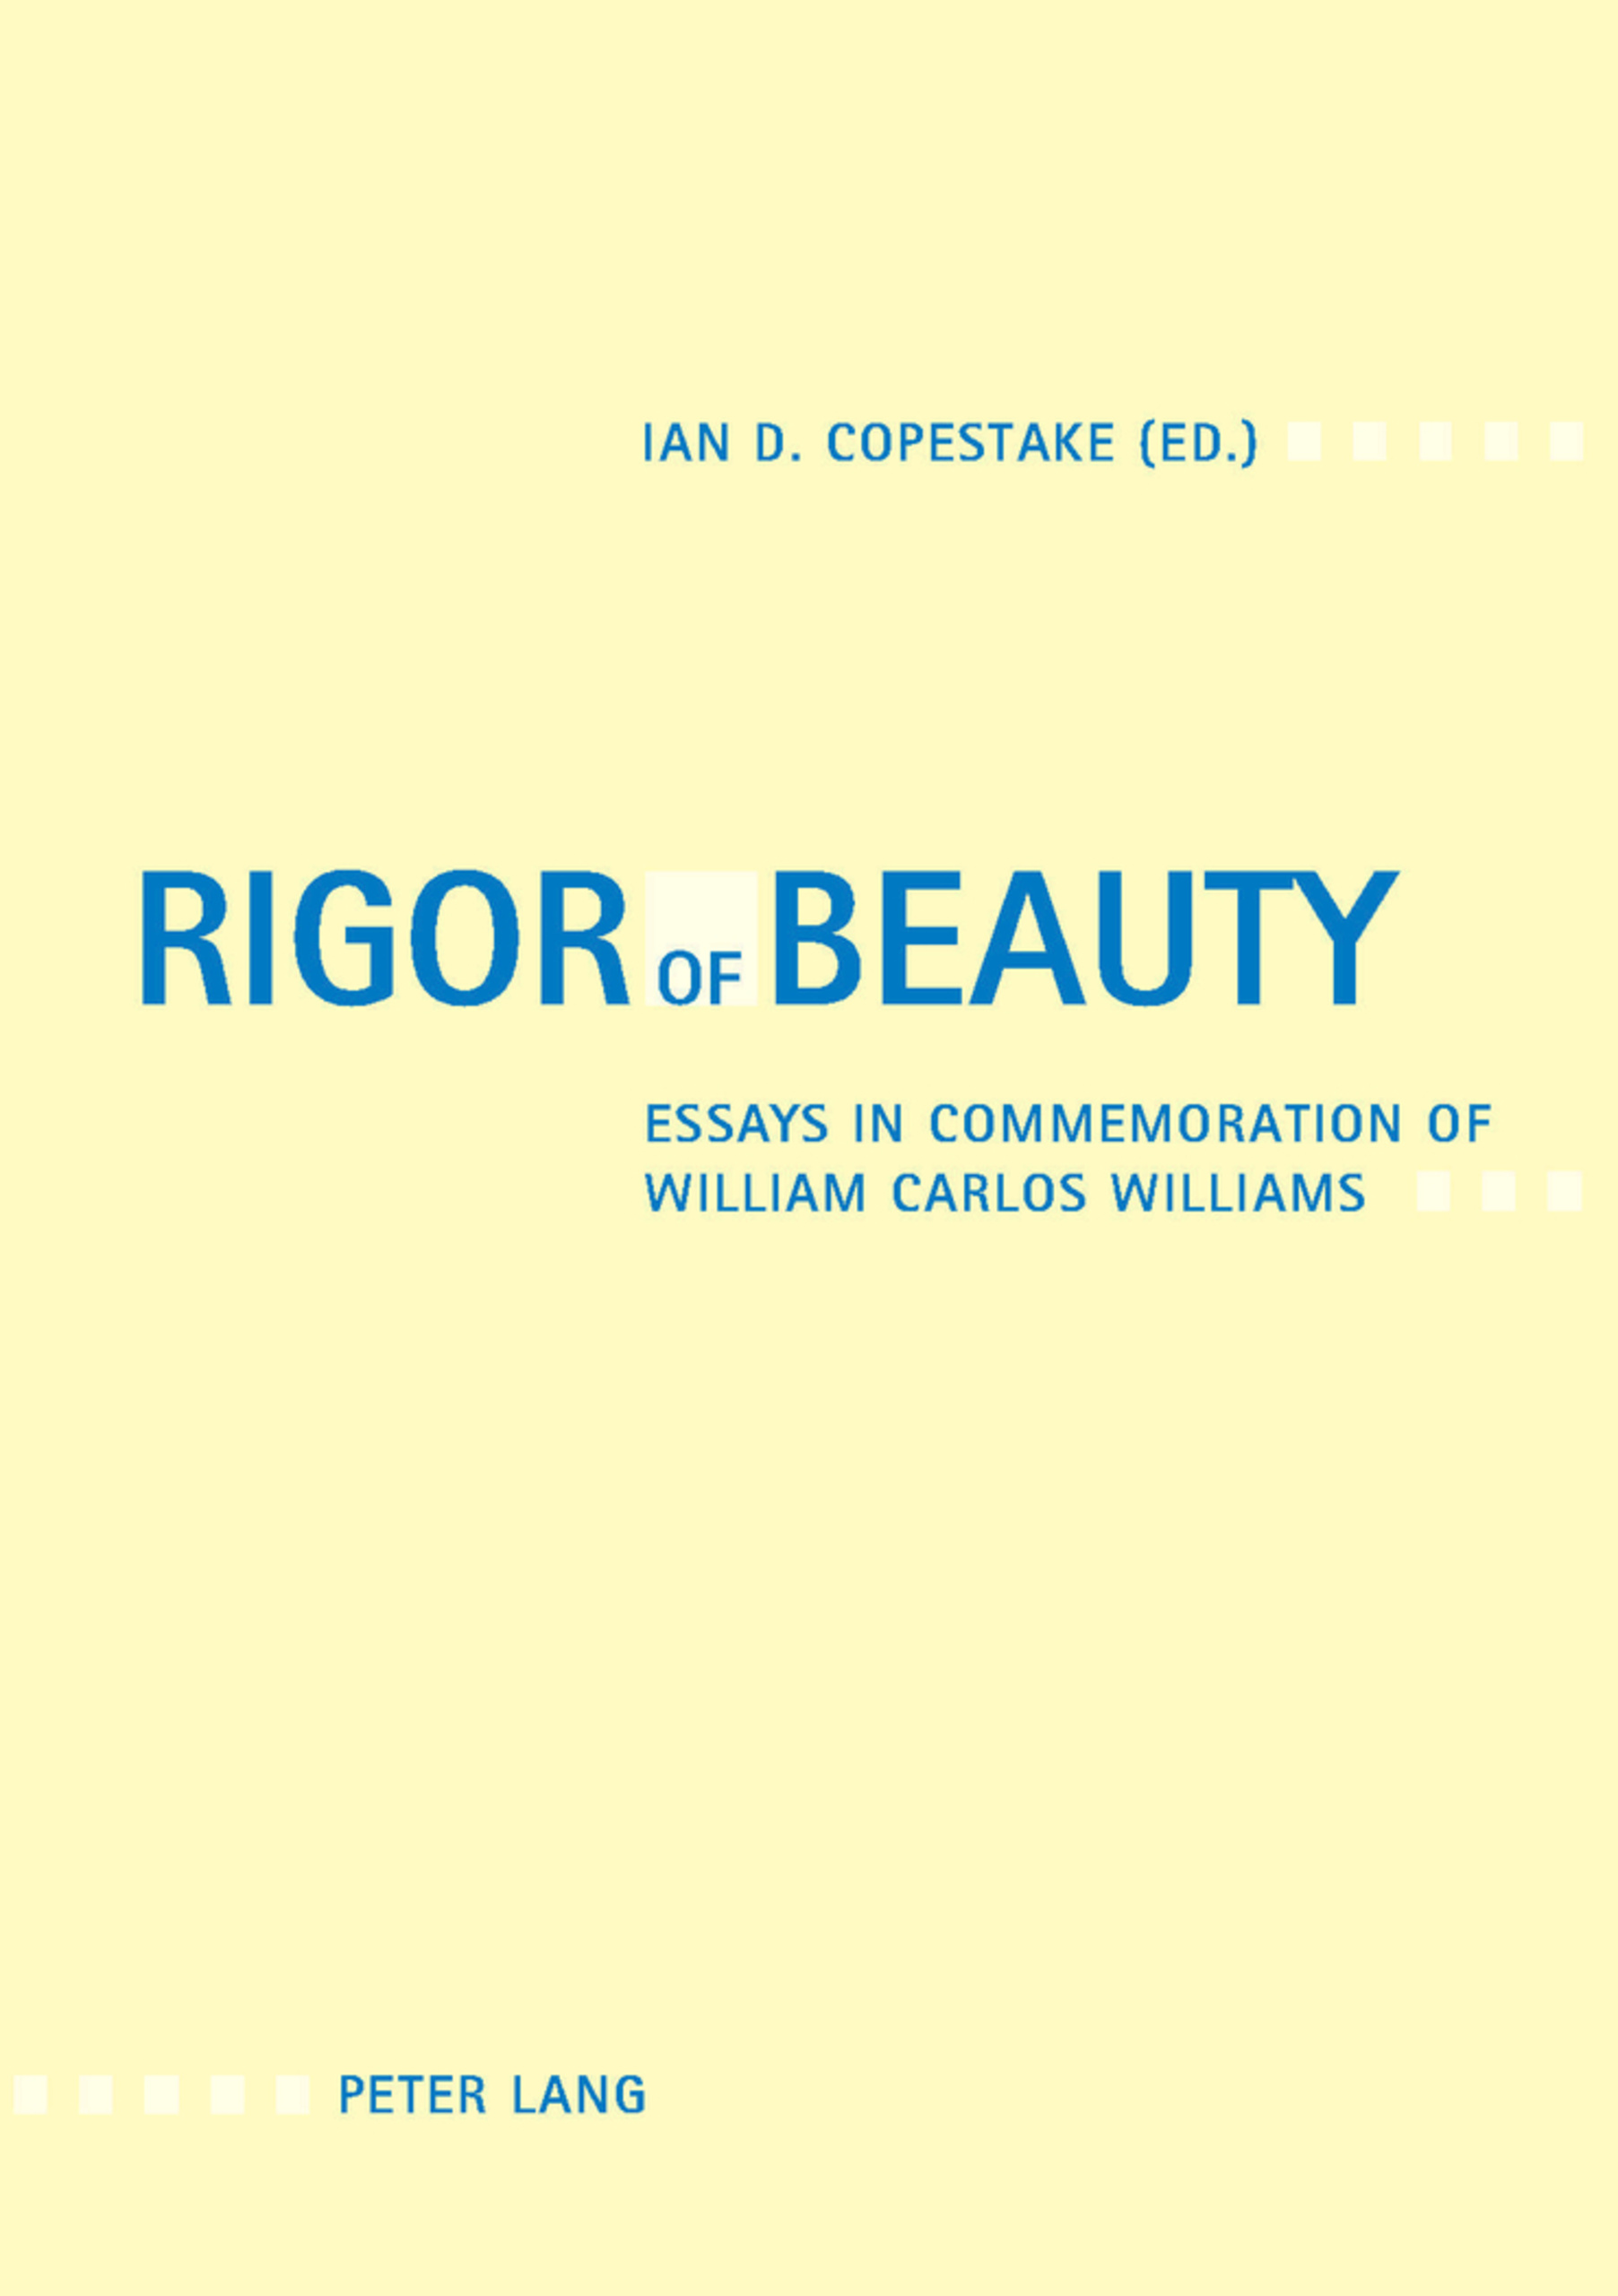 Title: Rigor of Beauty